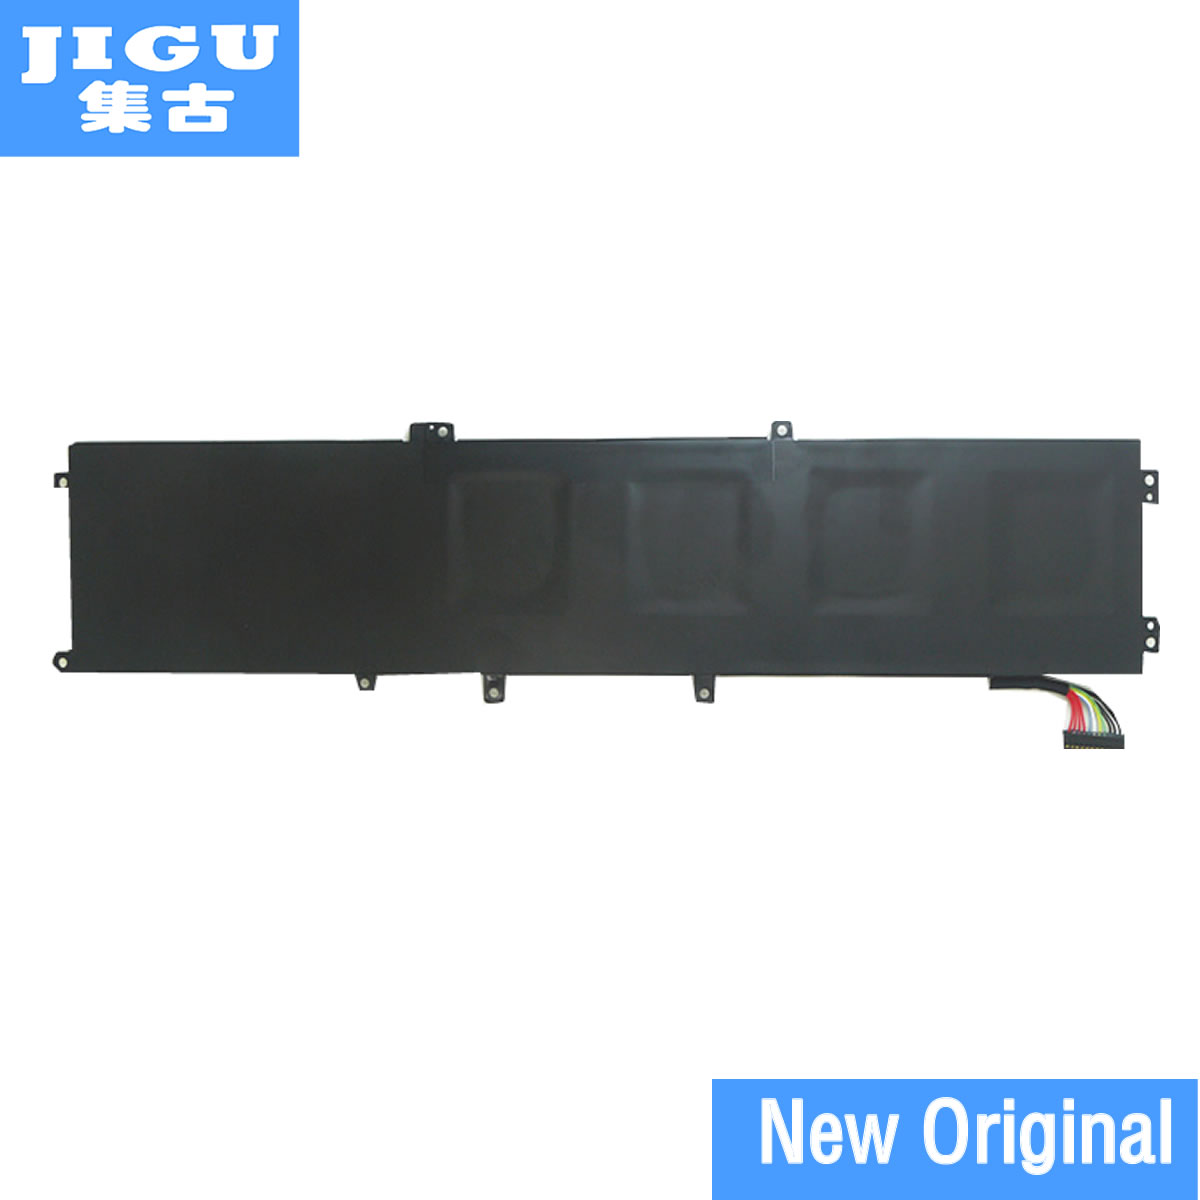 JIGU Original laptop Battery 1P6KD 4GVGH RRCGW FOR DELL for Precision 5510 XPS 15 9550 84wh new laptop battery for dell precision 3510 wj5r2 4f5yv